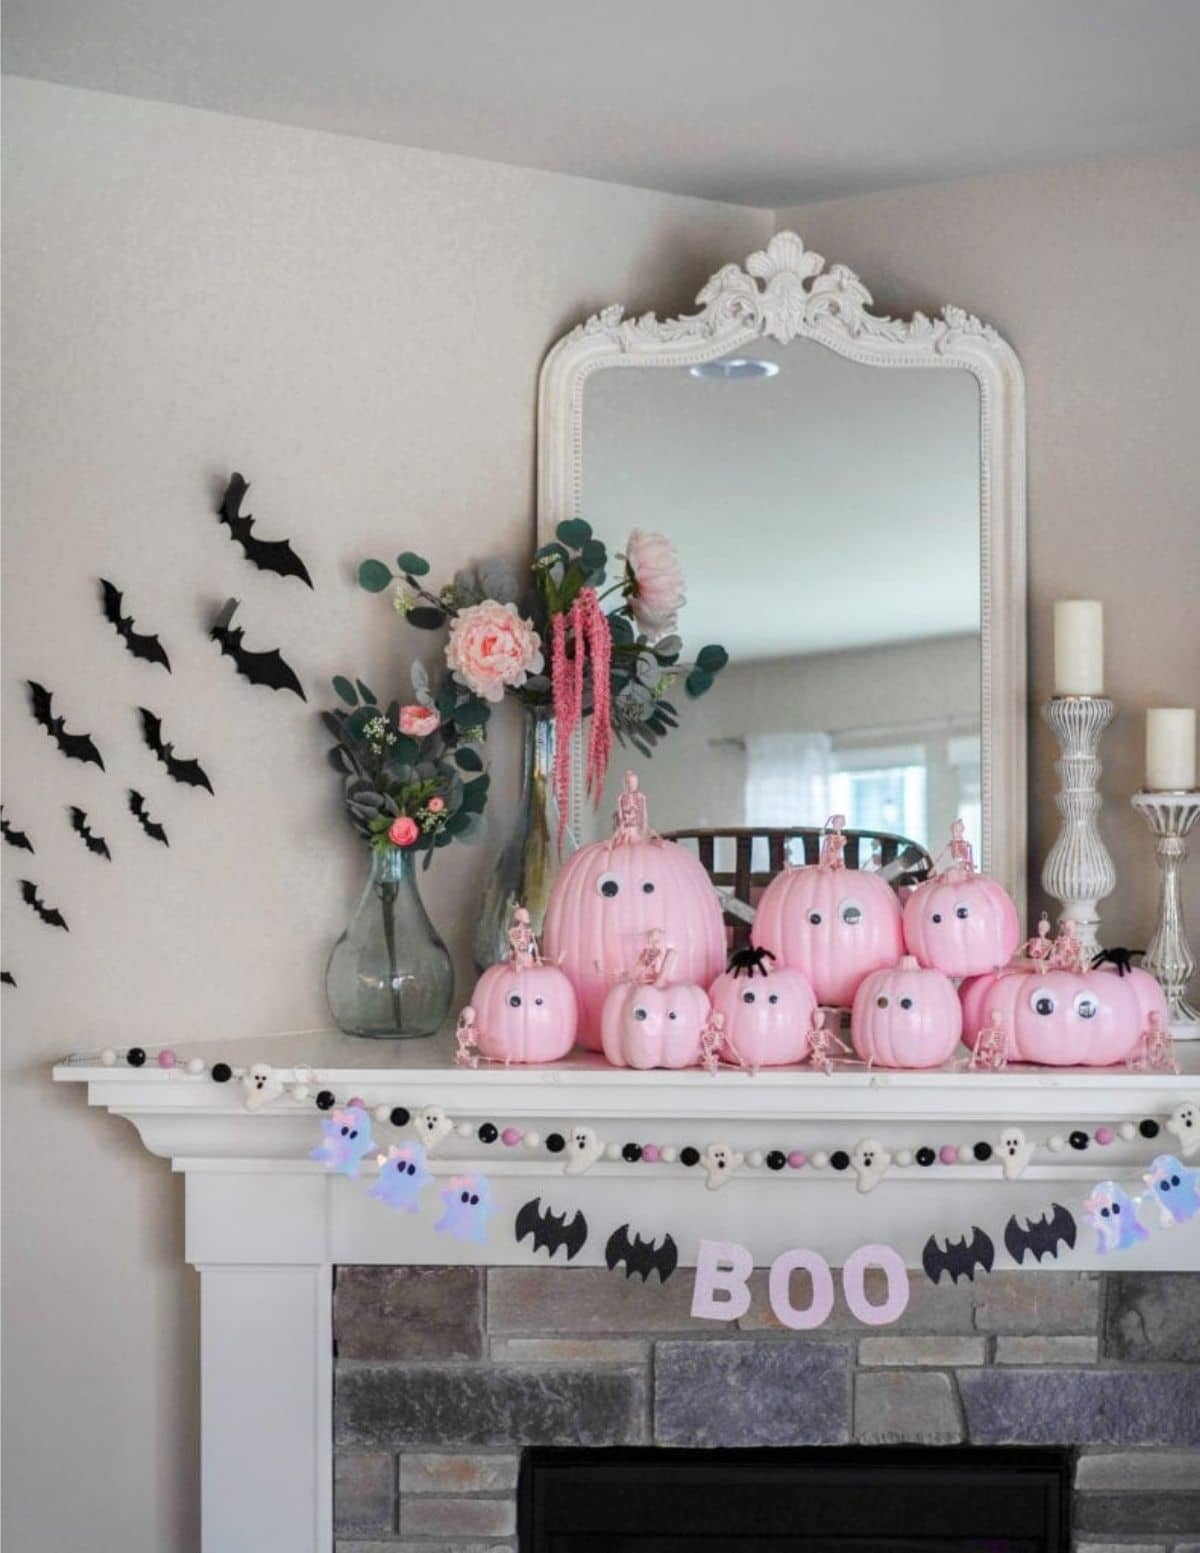 halloween mantel with pink pumpkins and Boo banner